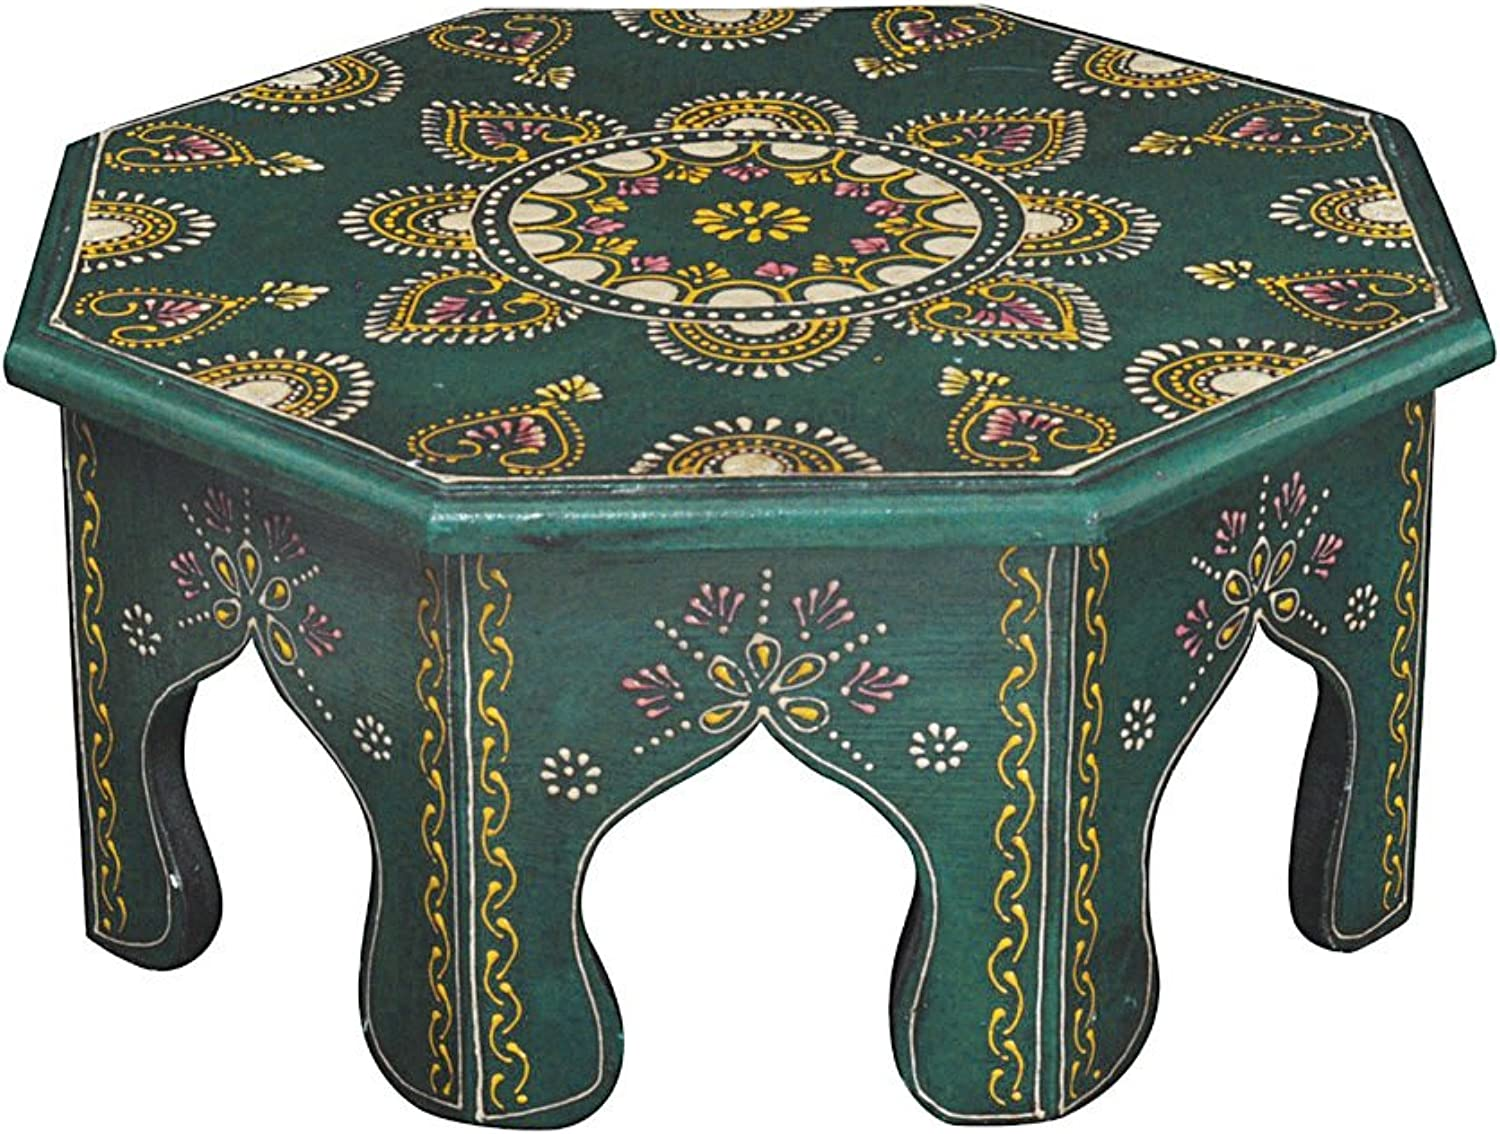 Pooja Chowki Decorative Small Table Stool 13 X 13 X 6 Inches